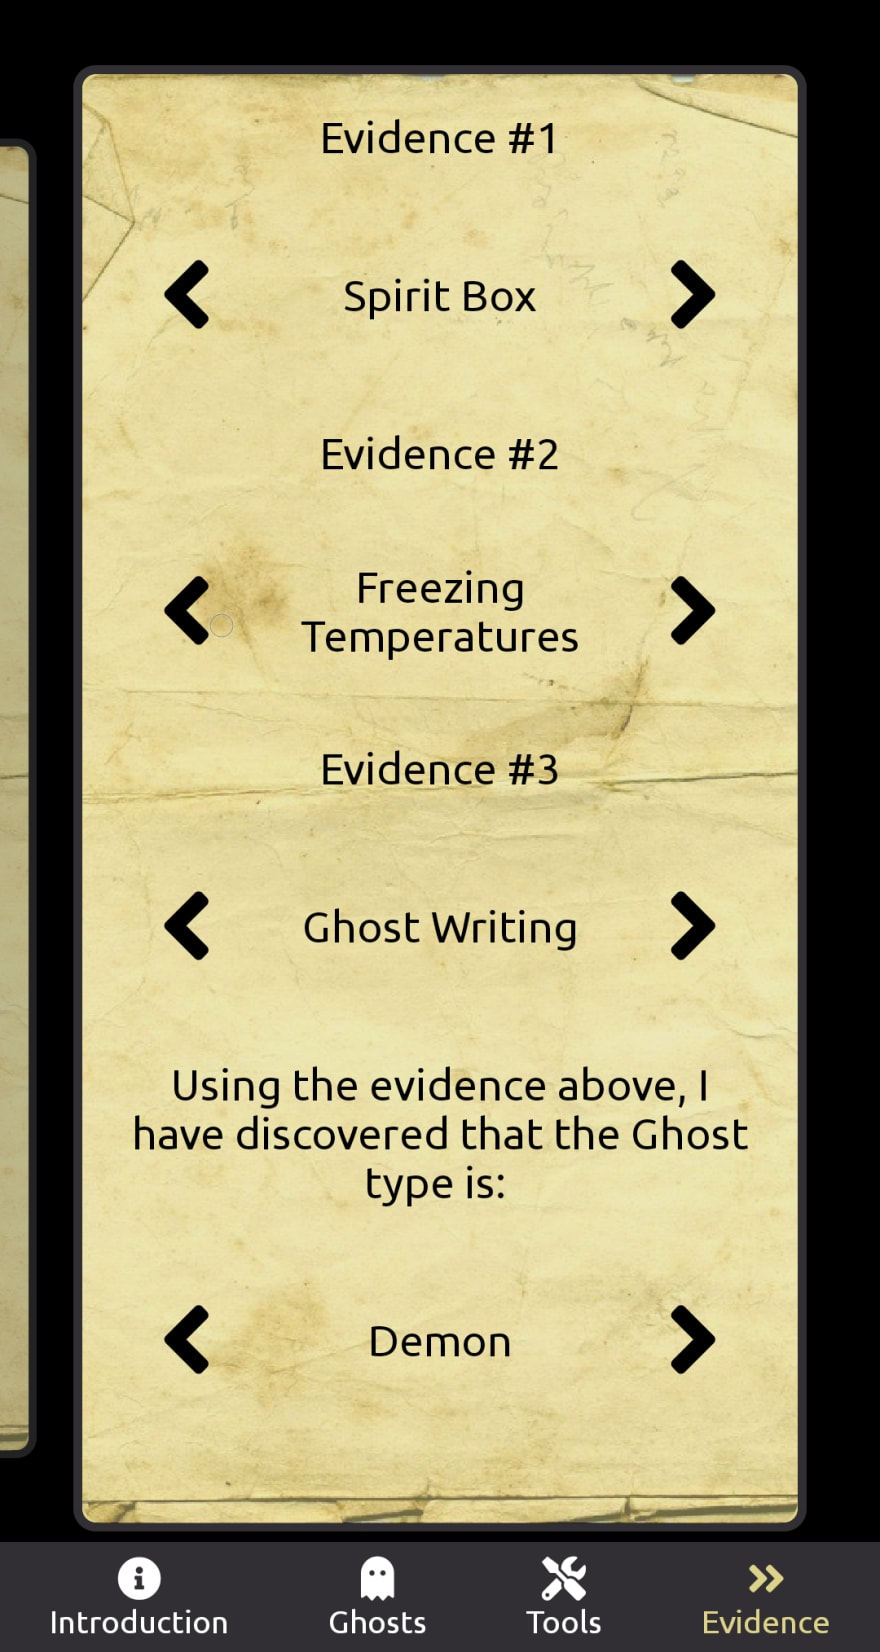 The Evidence Page